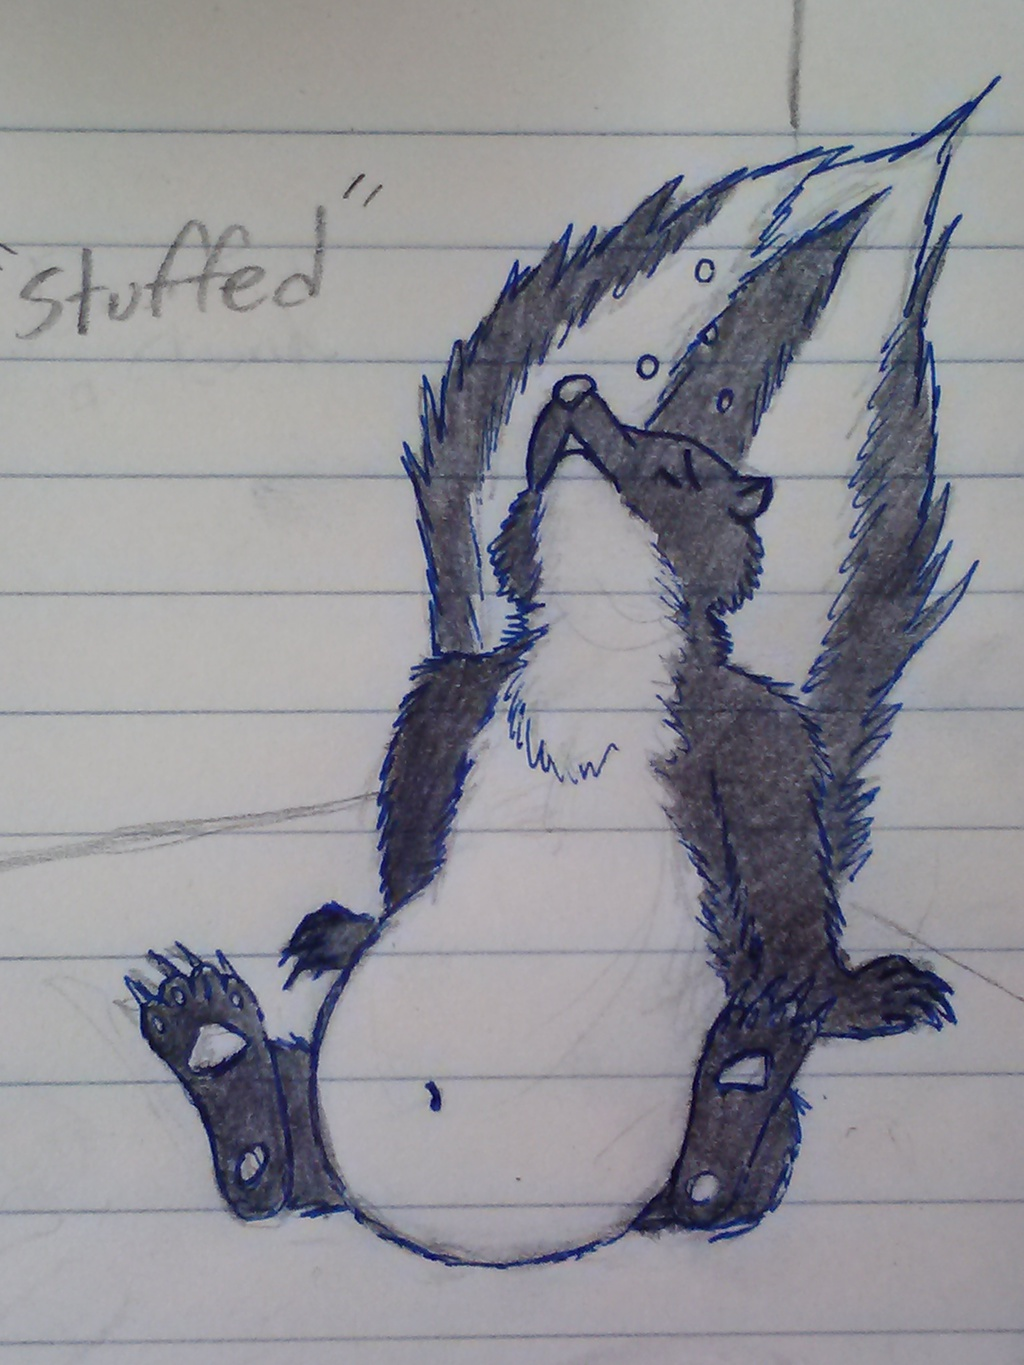 Most recent image: Stuffed Skunk